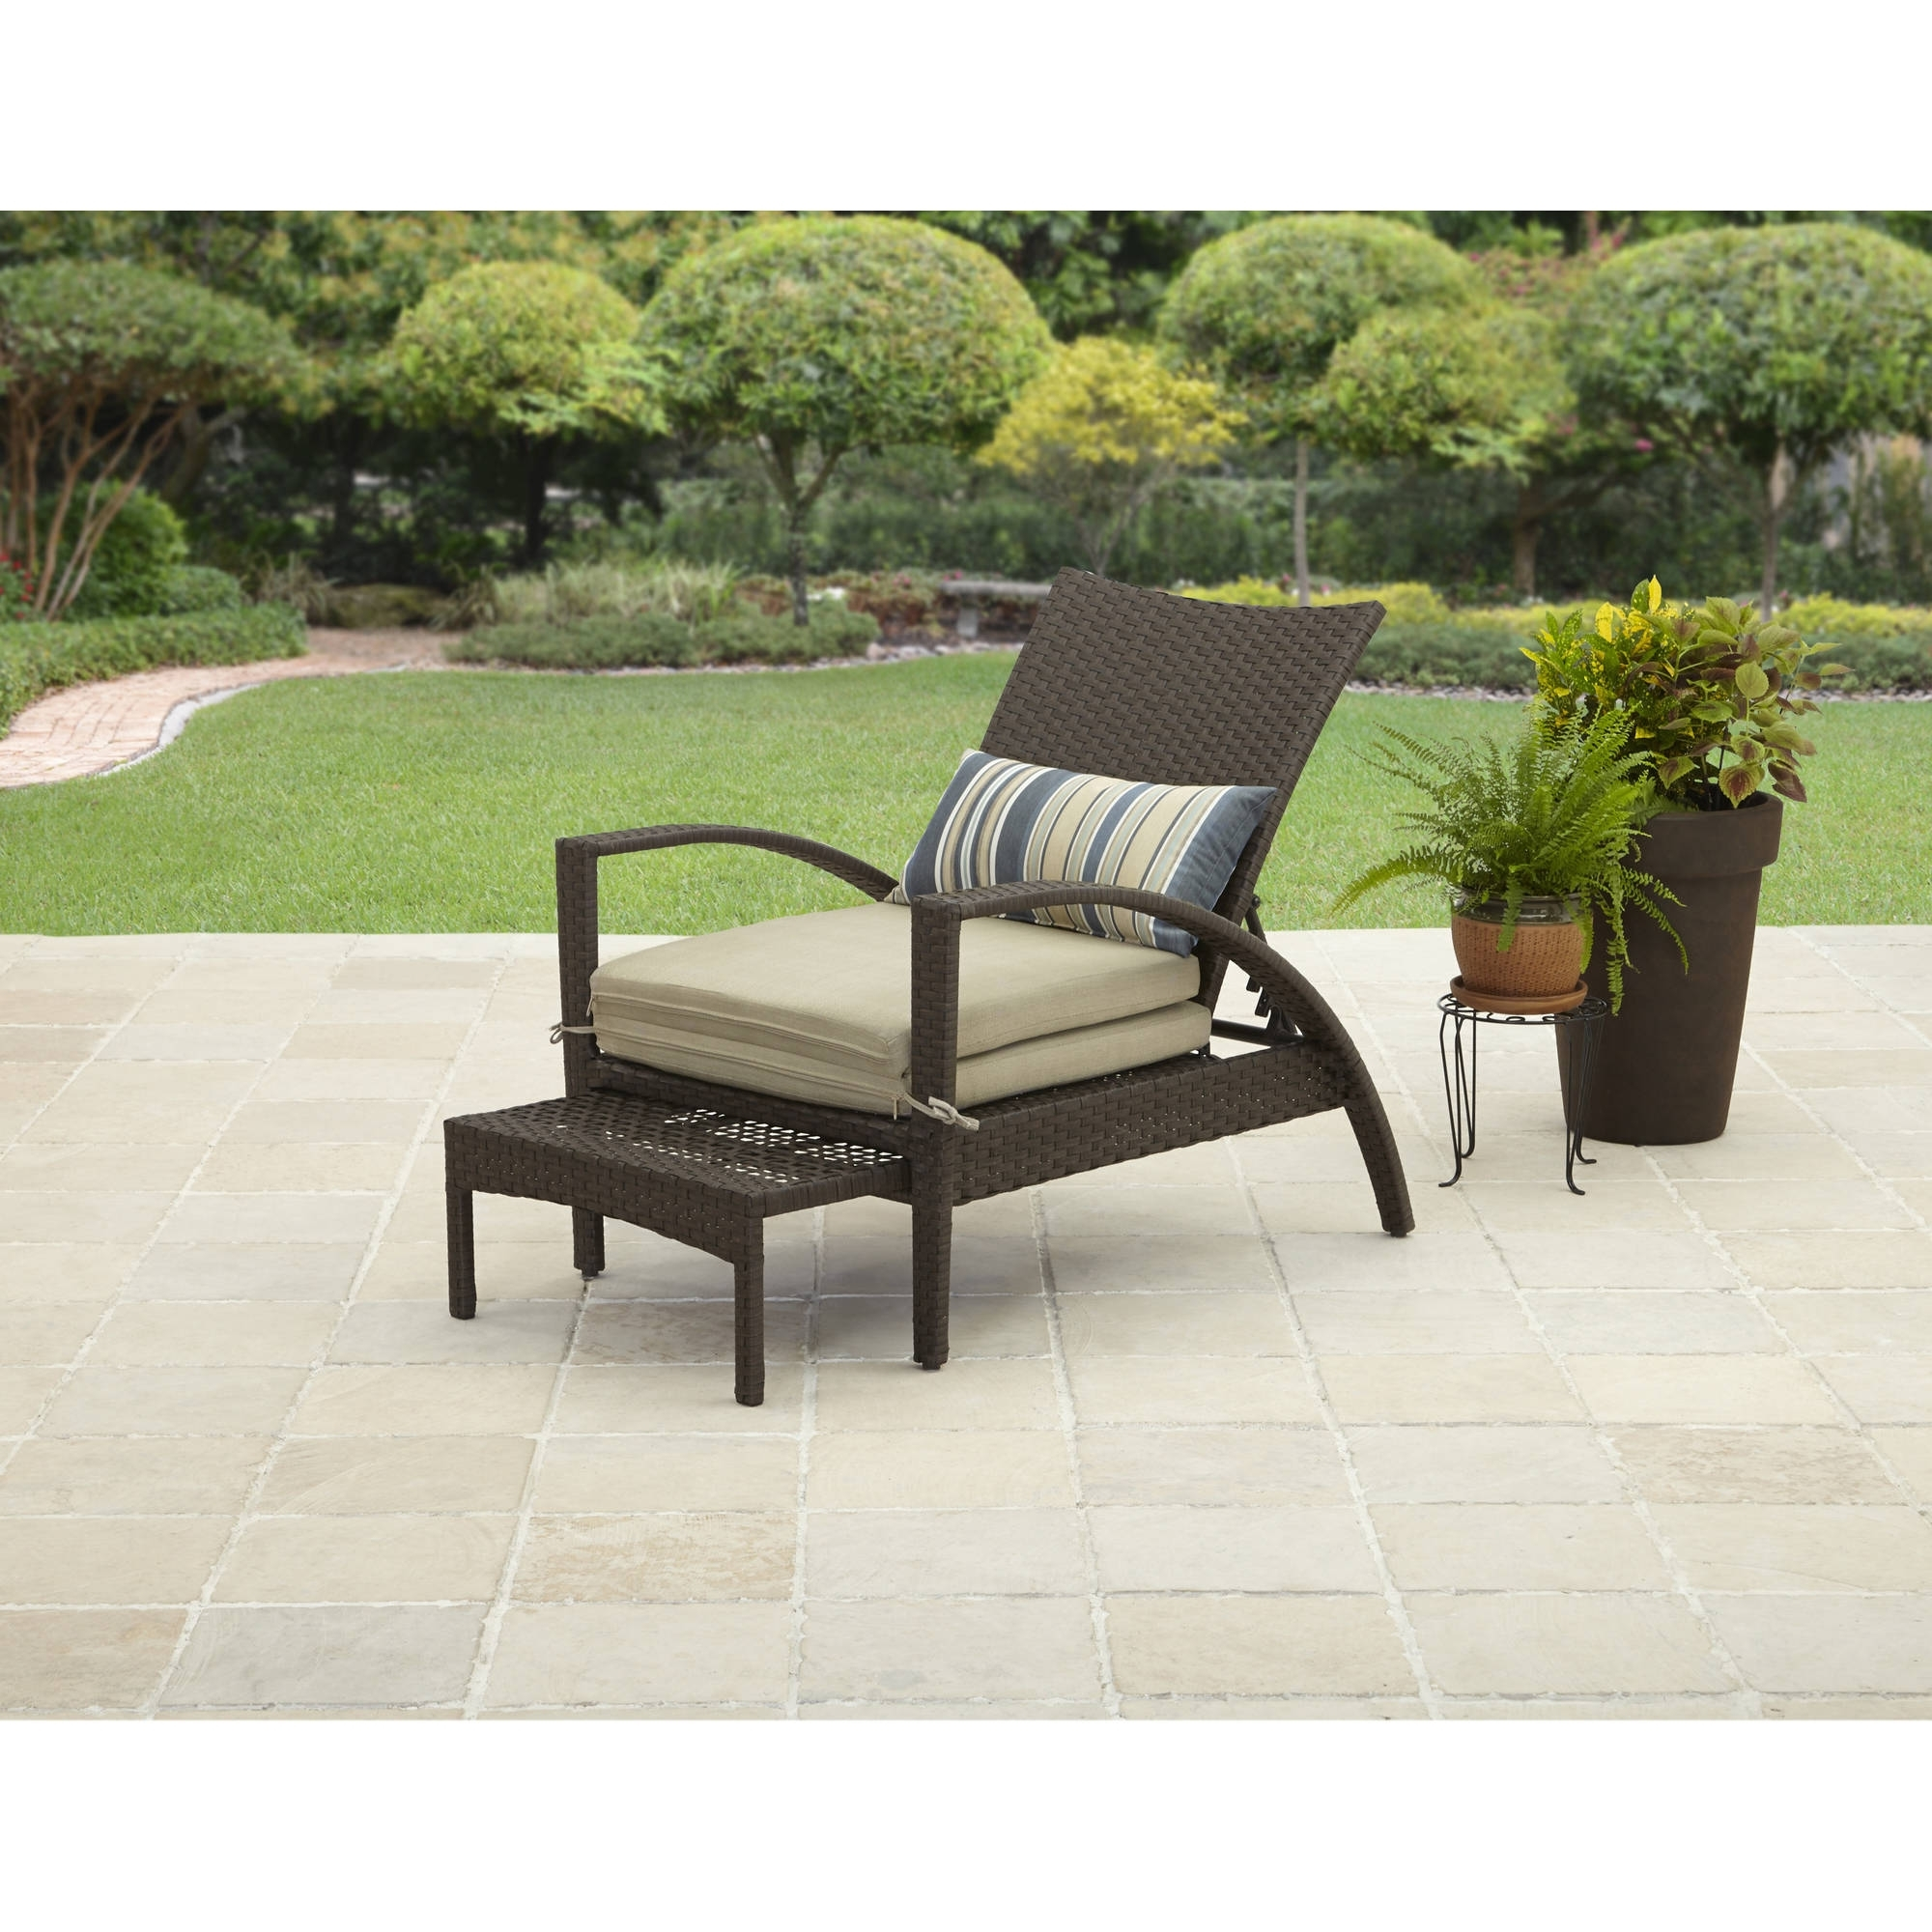 Outdoor Chaise Lounge Chairs At Walmart Within 2018 Better Homes And Gardens Avila Beach Pull Out Chaise – Walmart (View 10 of 15)